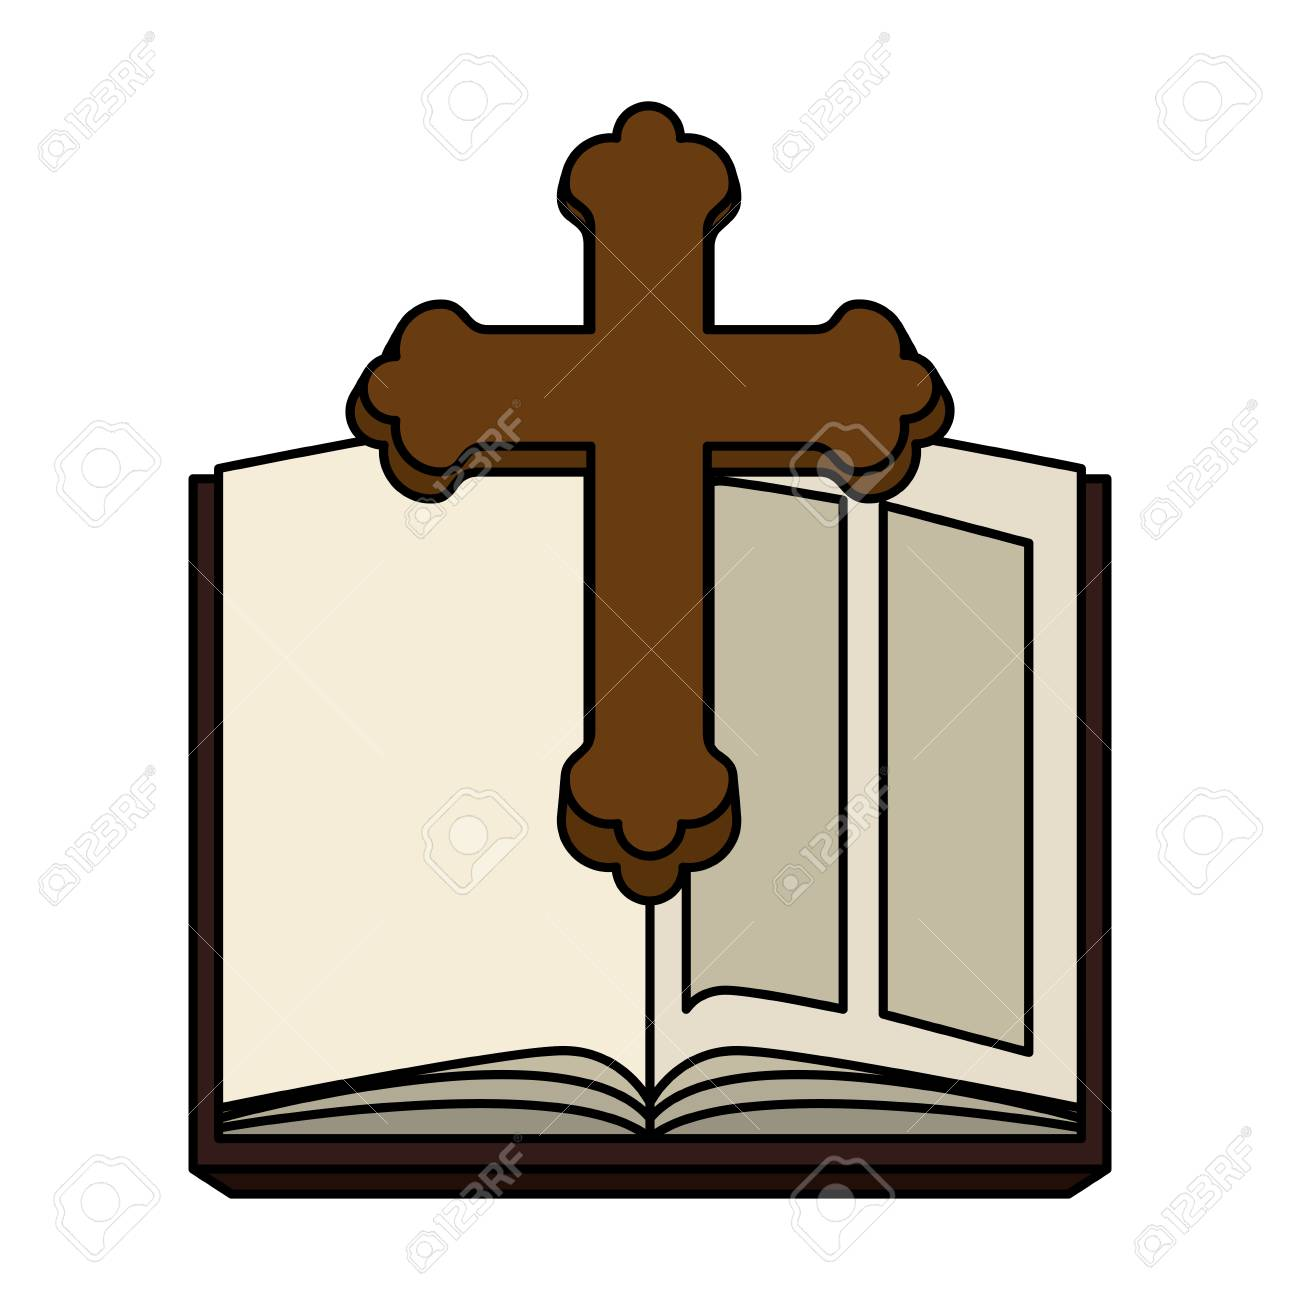 holy bible with wooden cross vector illustration design - 121096636